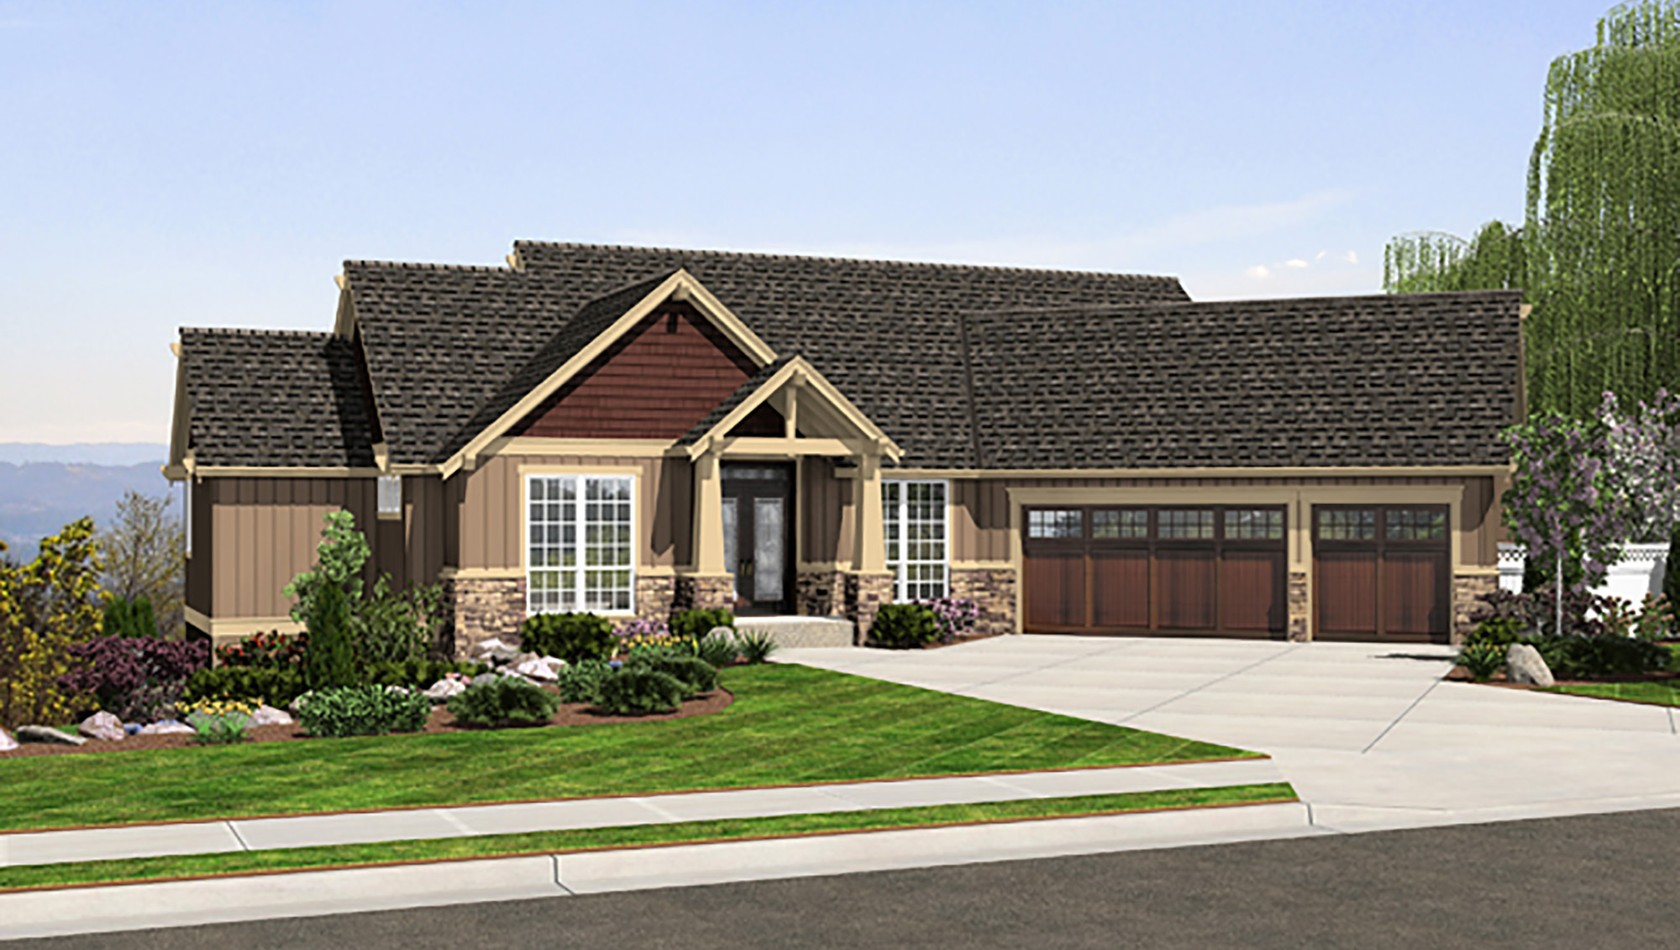 Main image for house plan 1323: The Paysholme